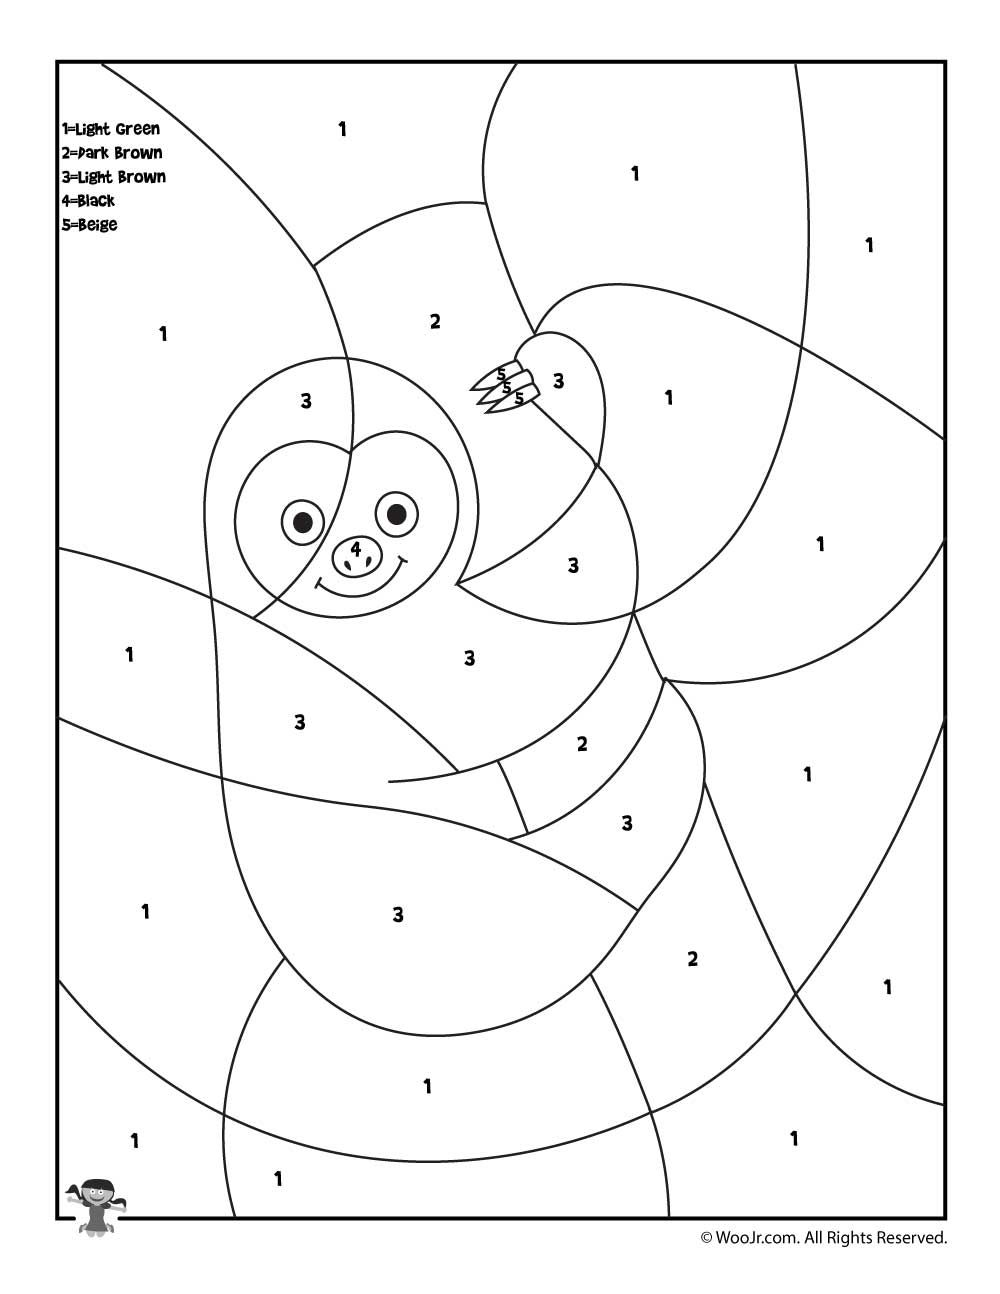 Preschool Color By Number Animal Coloring Pages Woo Jr Kids Activities Preschool Colors Rainforest Activities Animal Coloring Pages